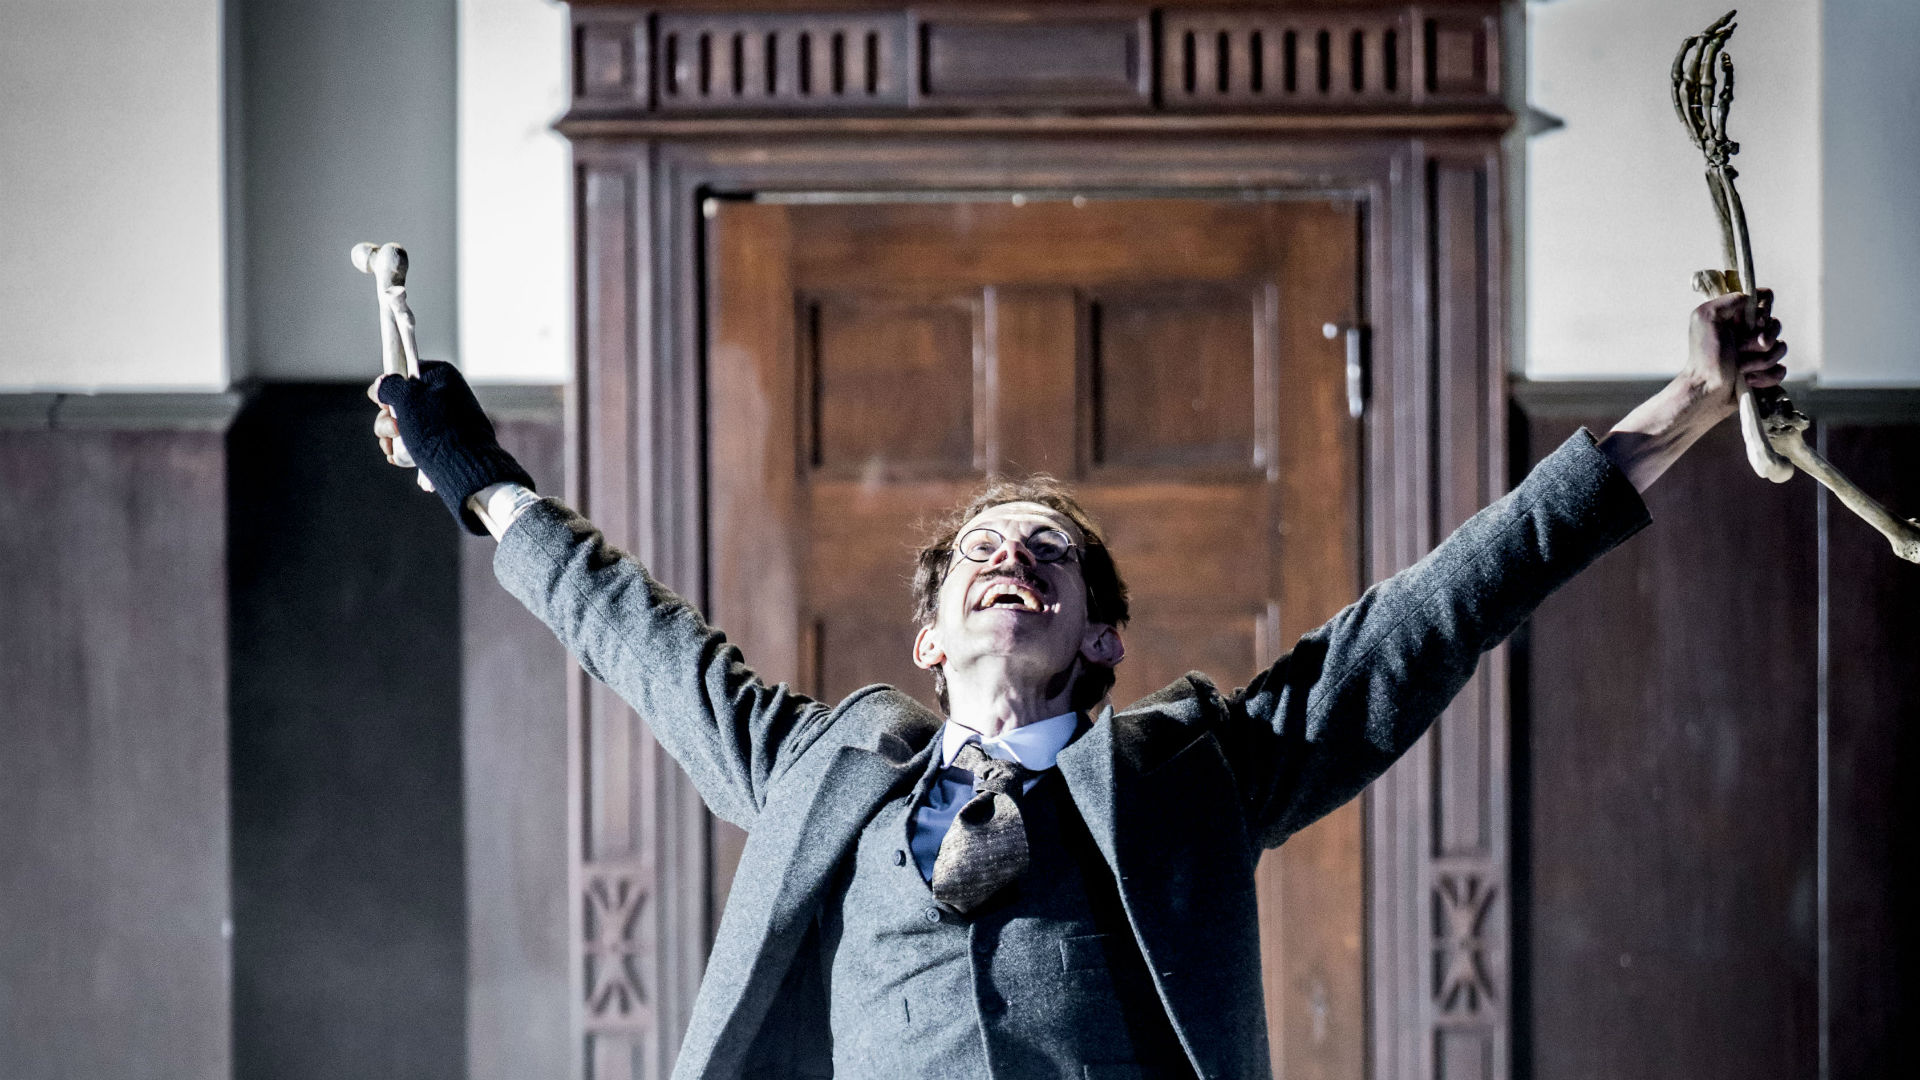 A performer celebrates in The Lehman Trilogy